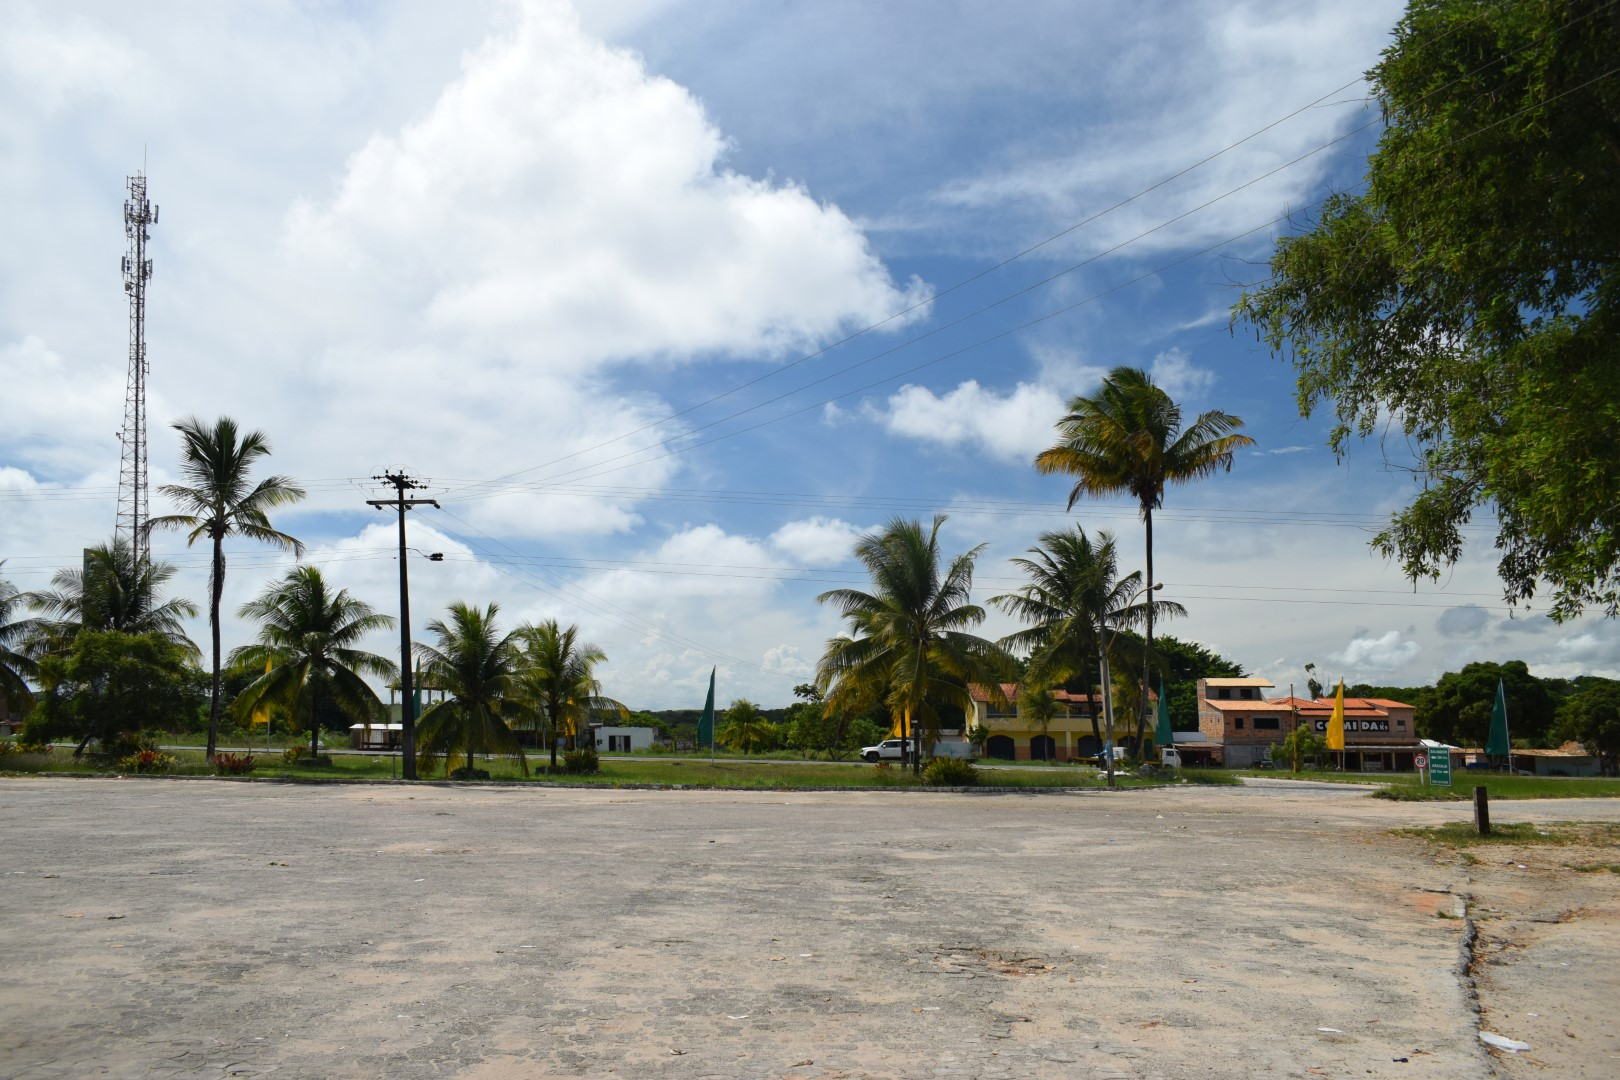 Middle of nowhere pit stop between Aracaju and Salvador